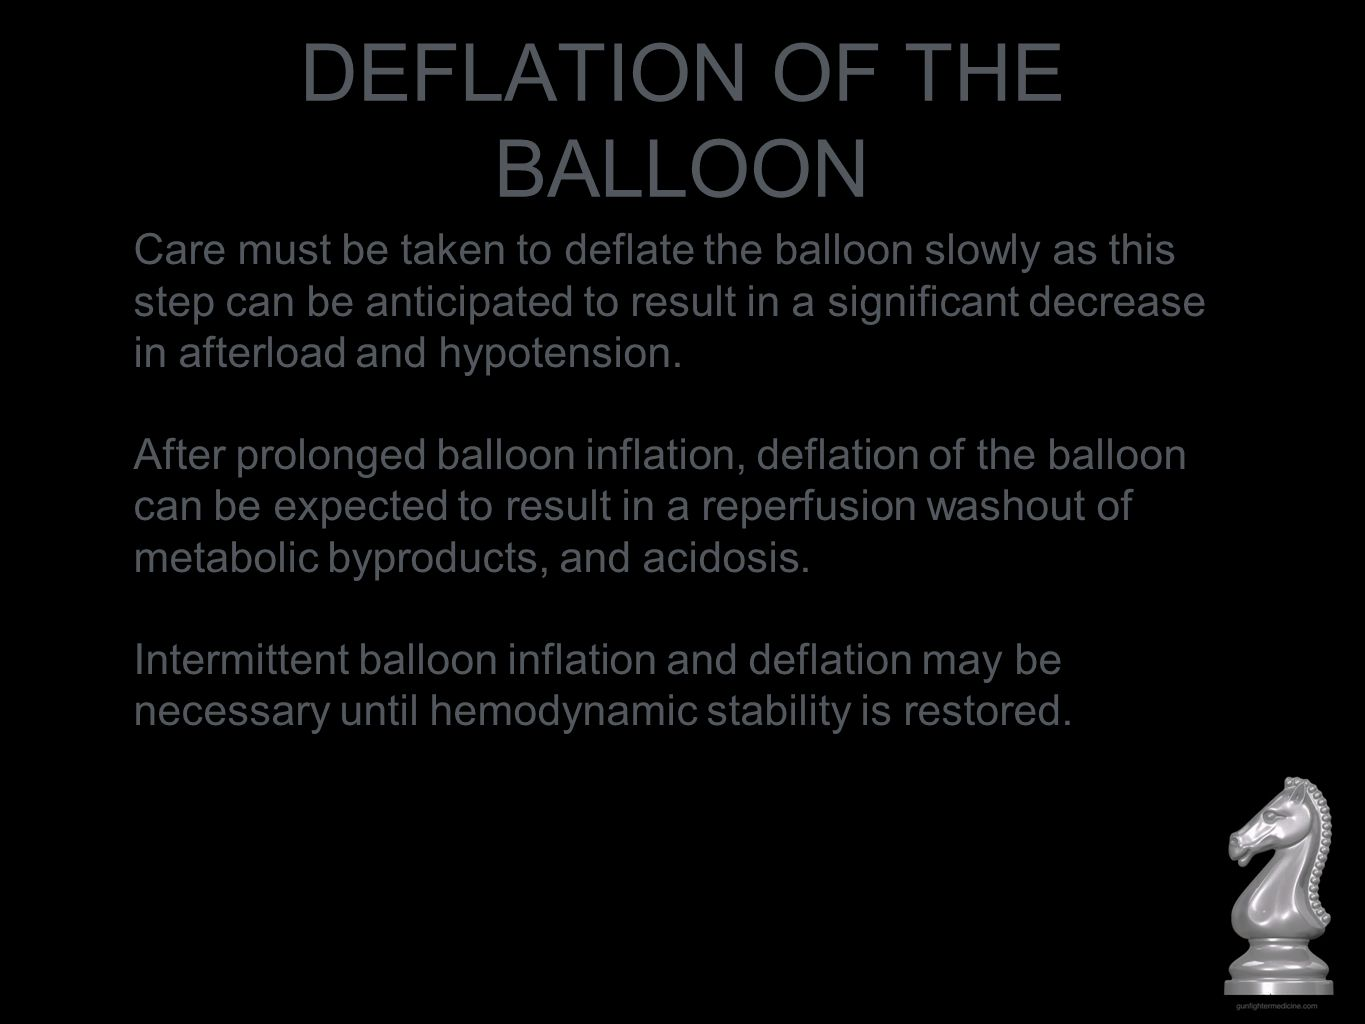 DEFLATION OF THE BALLOON